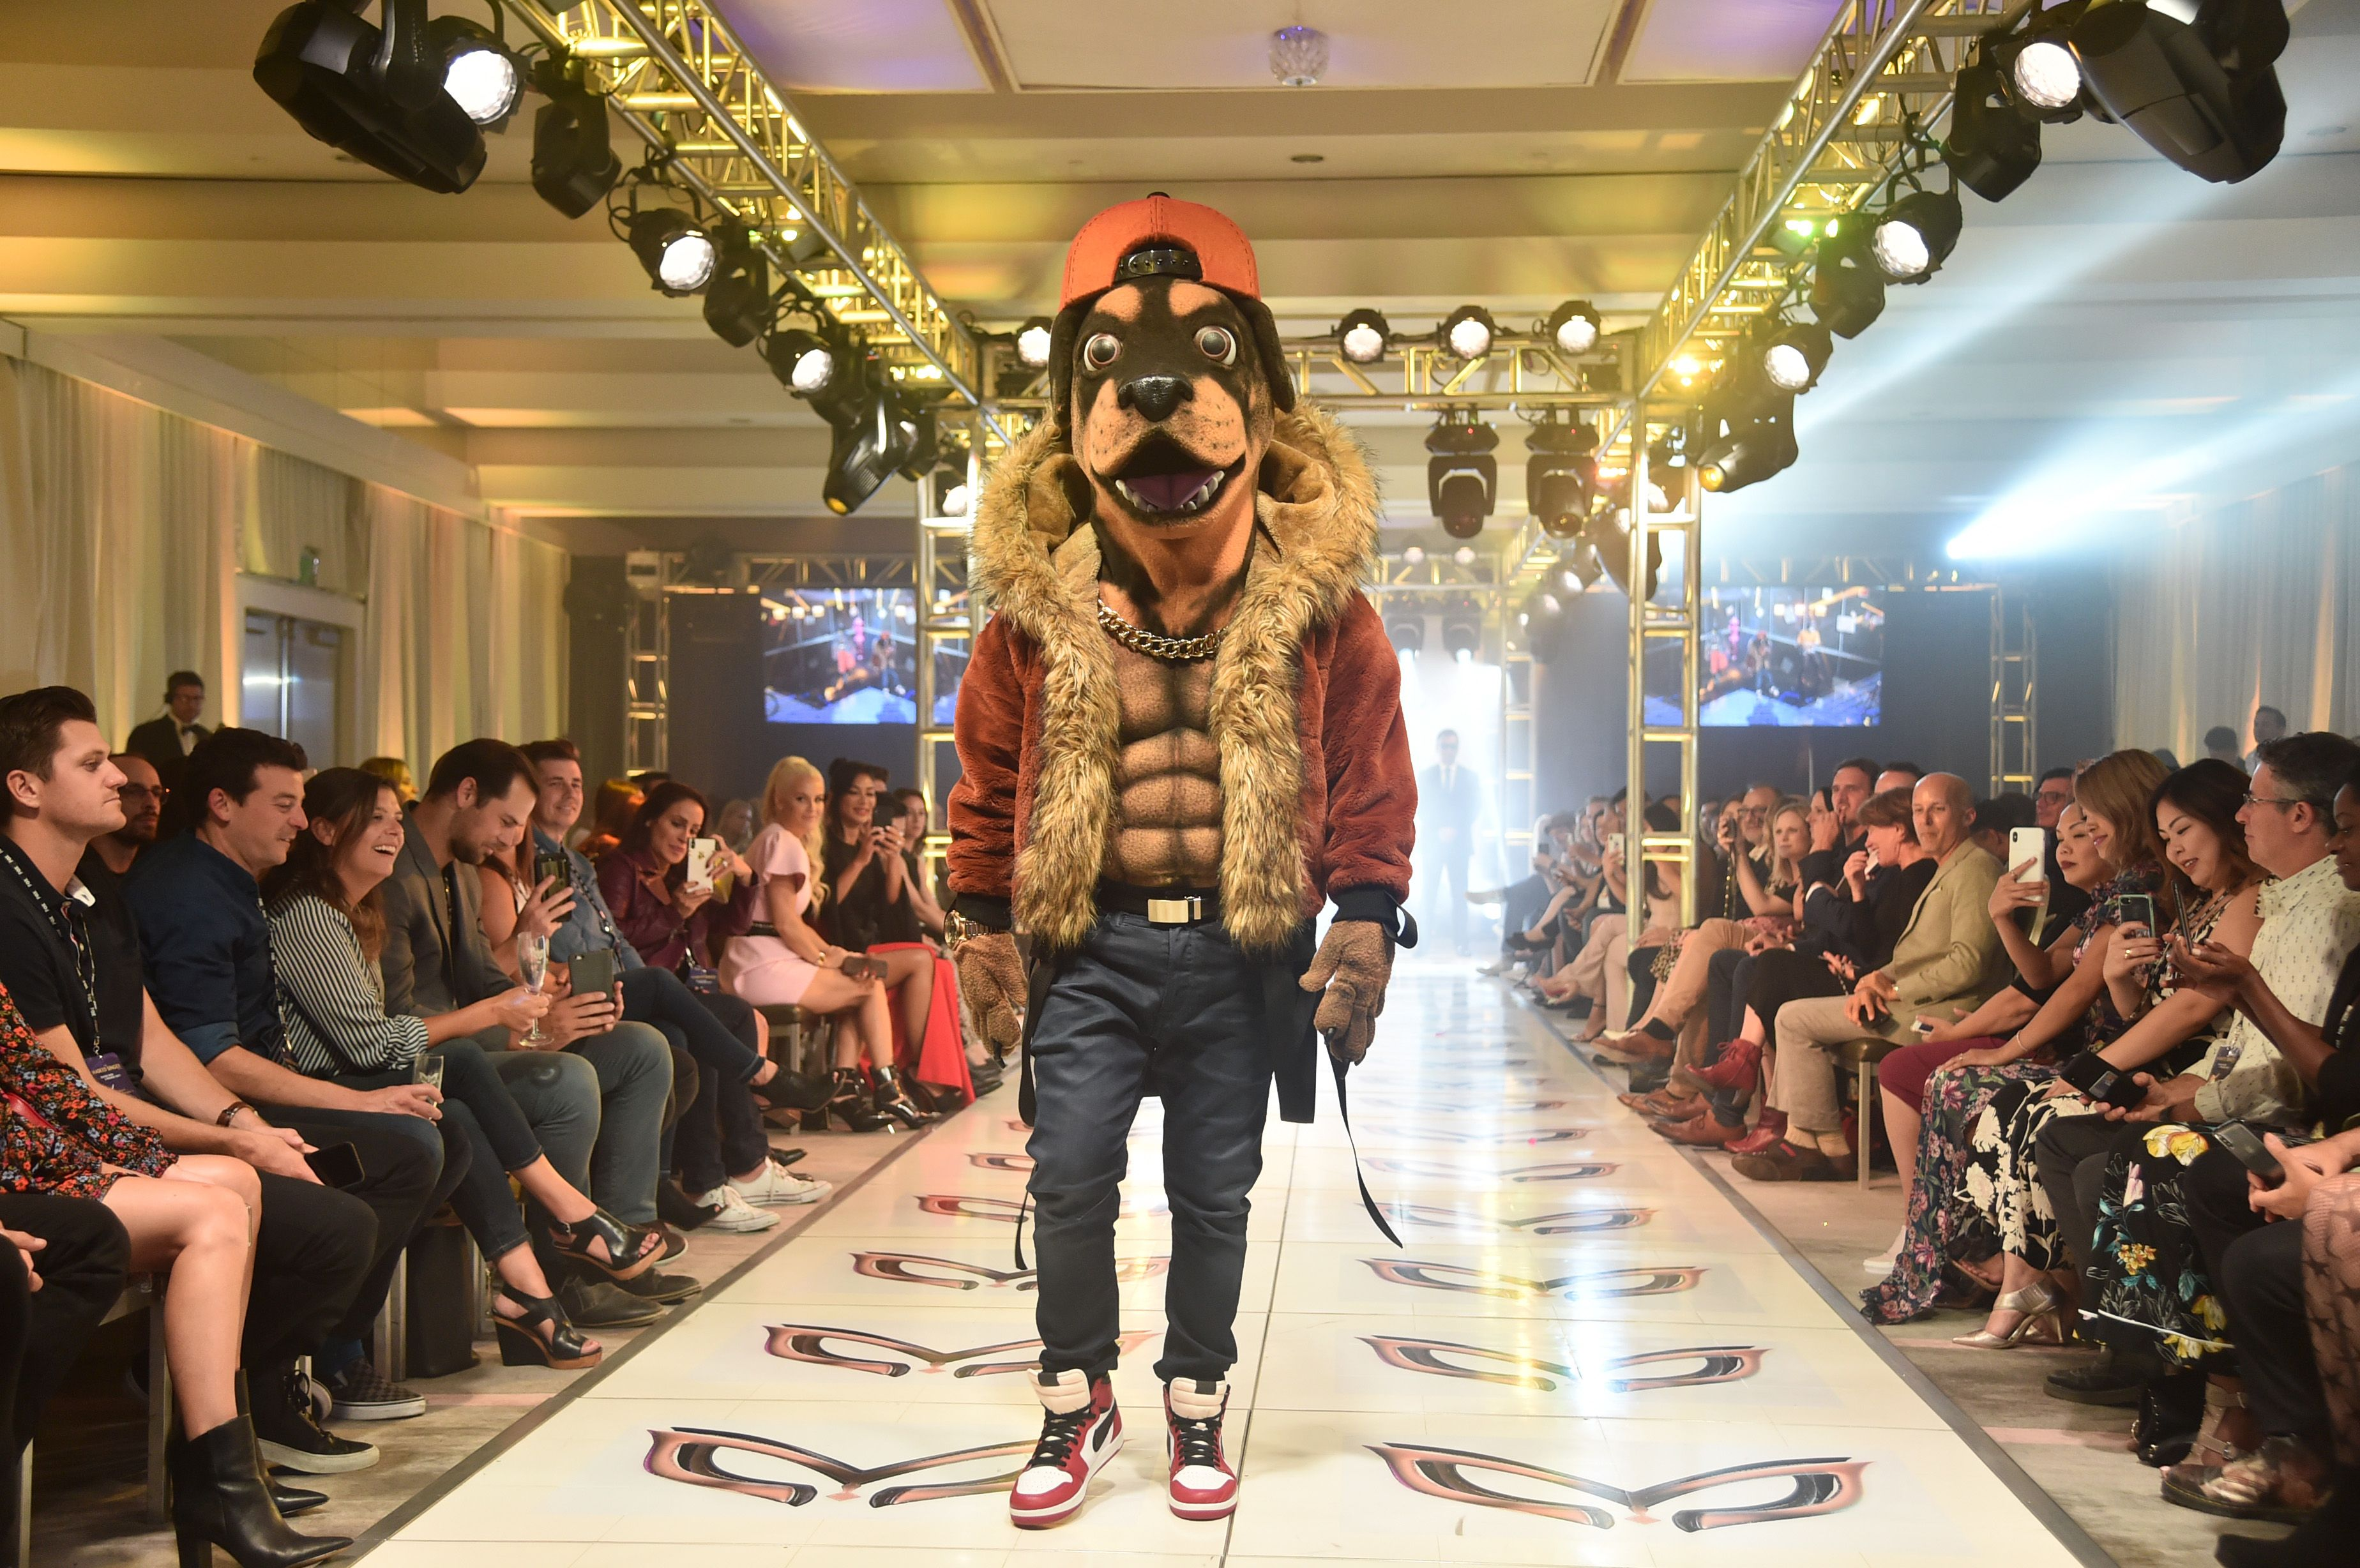 The Masked Singer's Rottweiler on a runway.